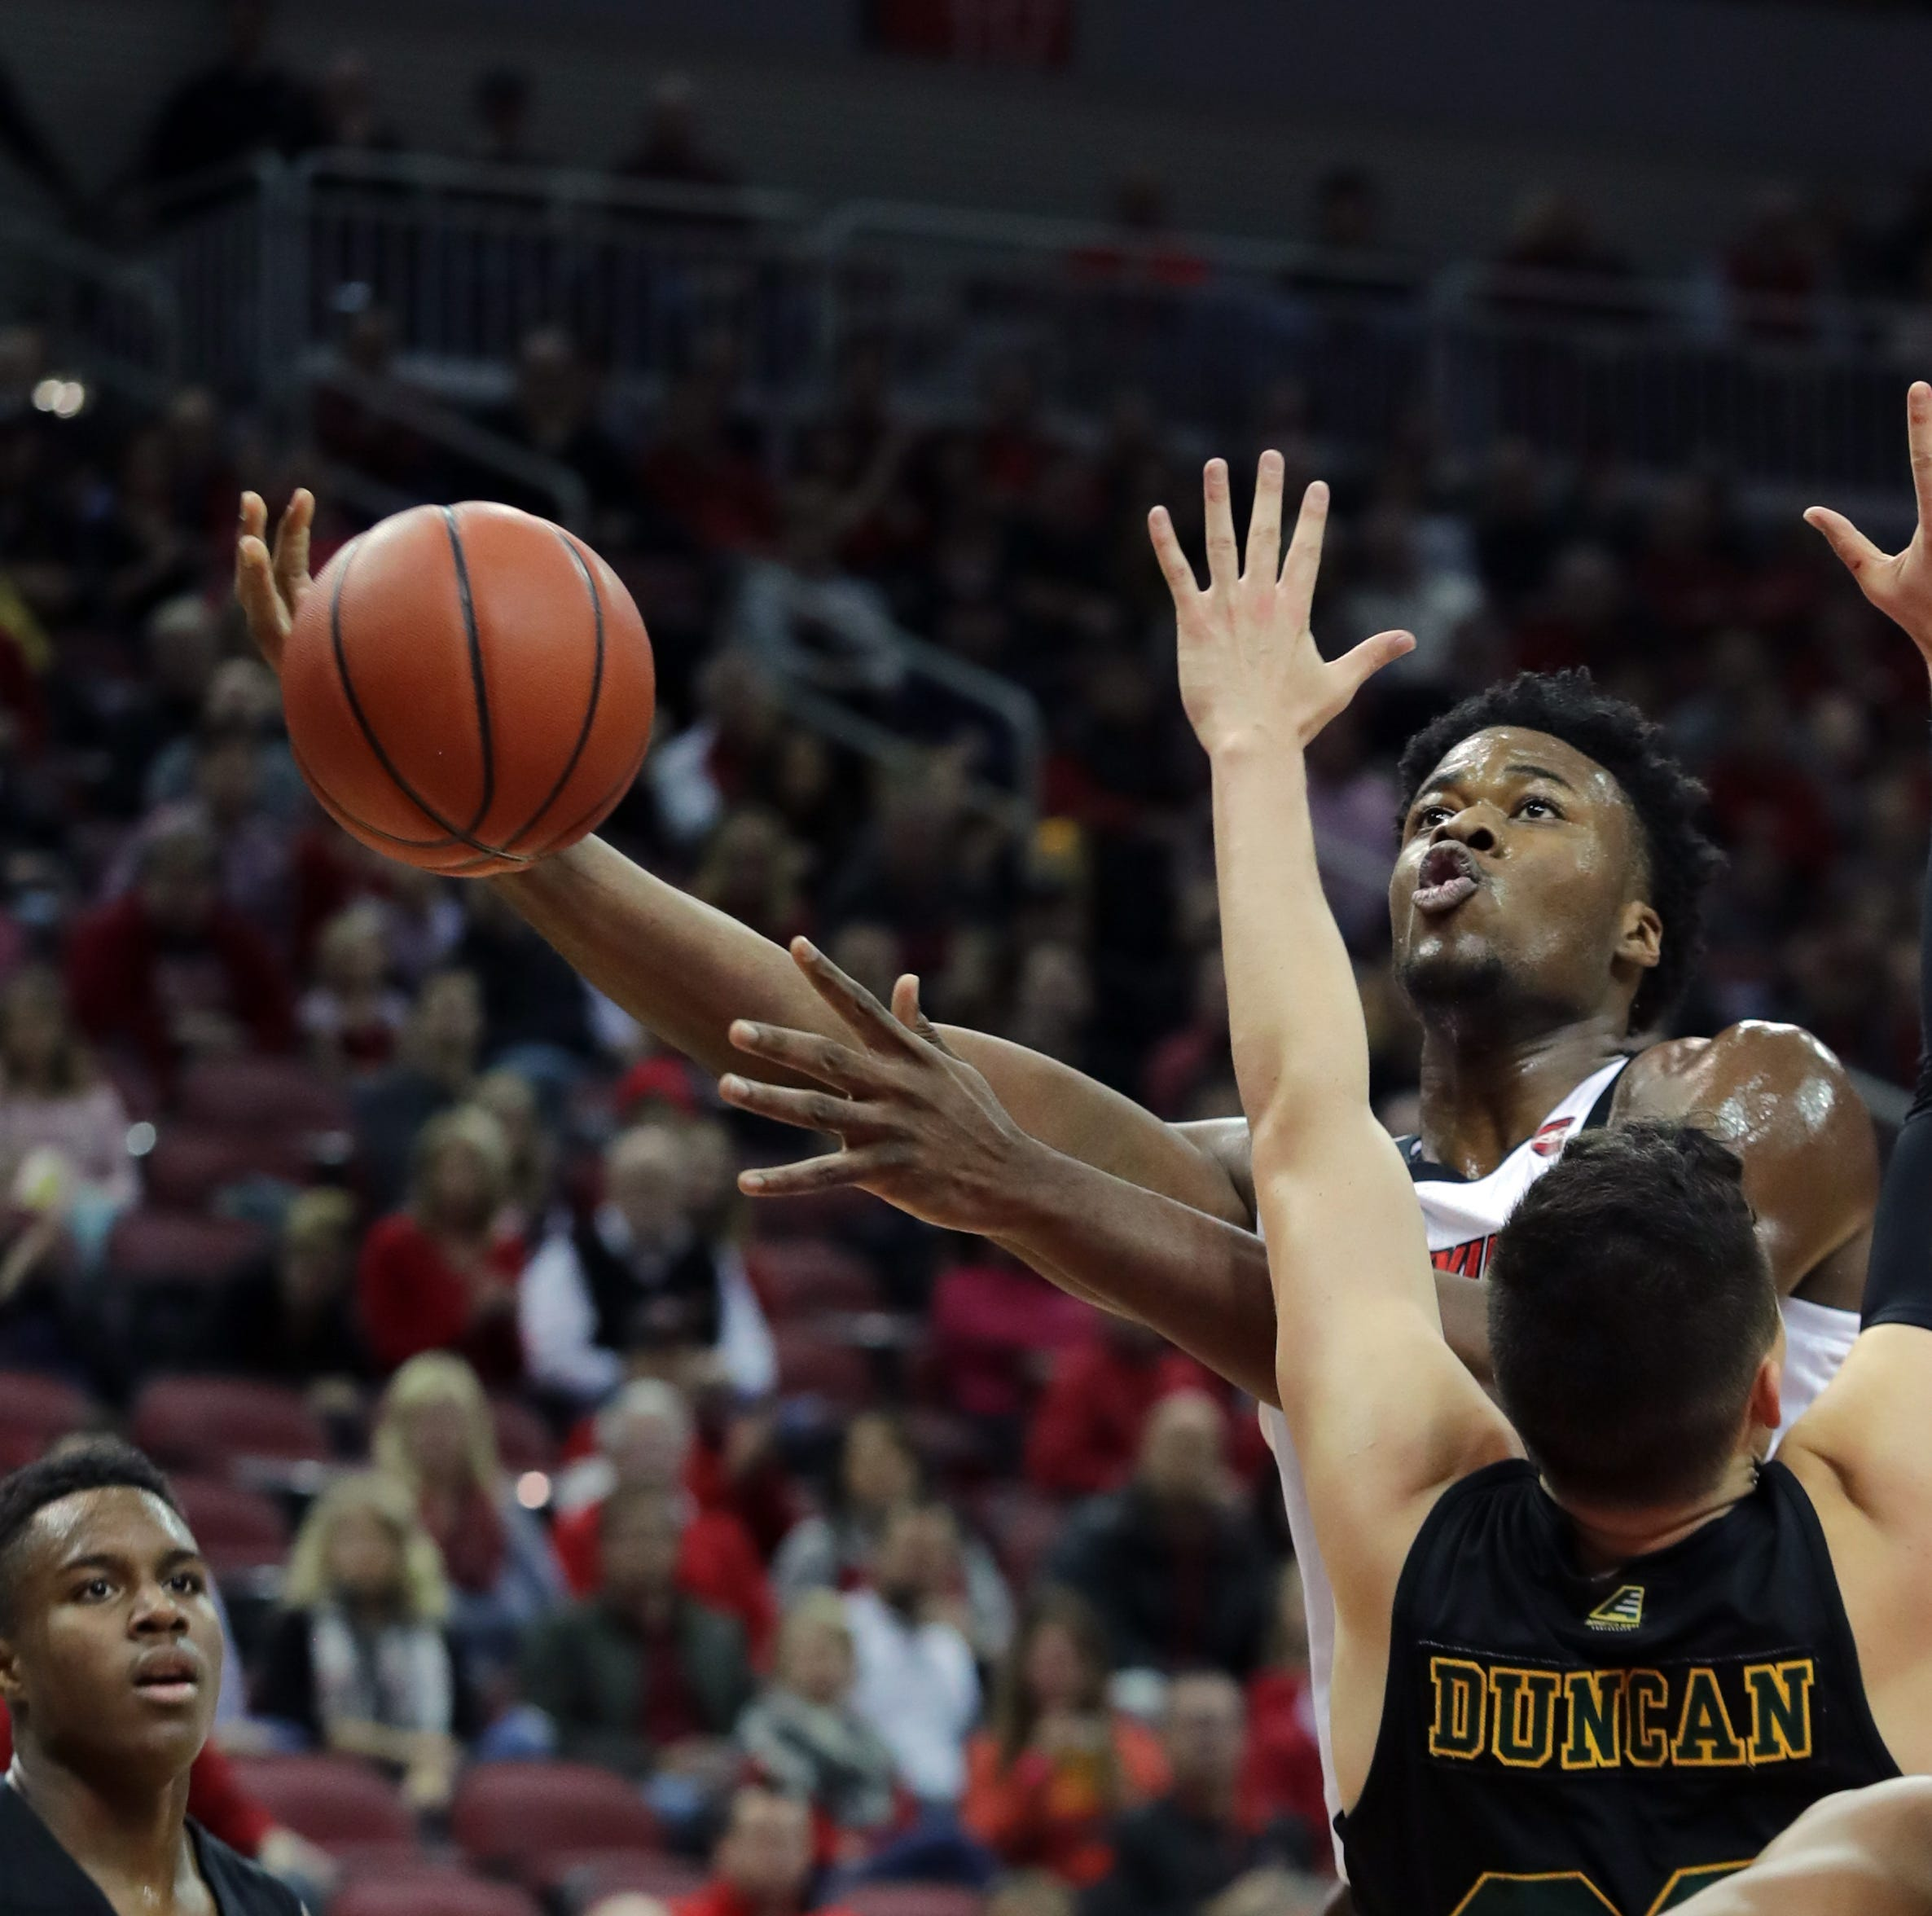 UVM men's basketball: Louisville holds off Catamounts' late rally